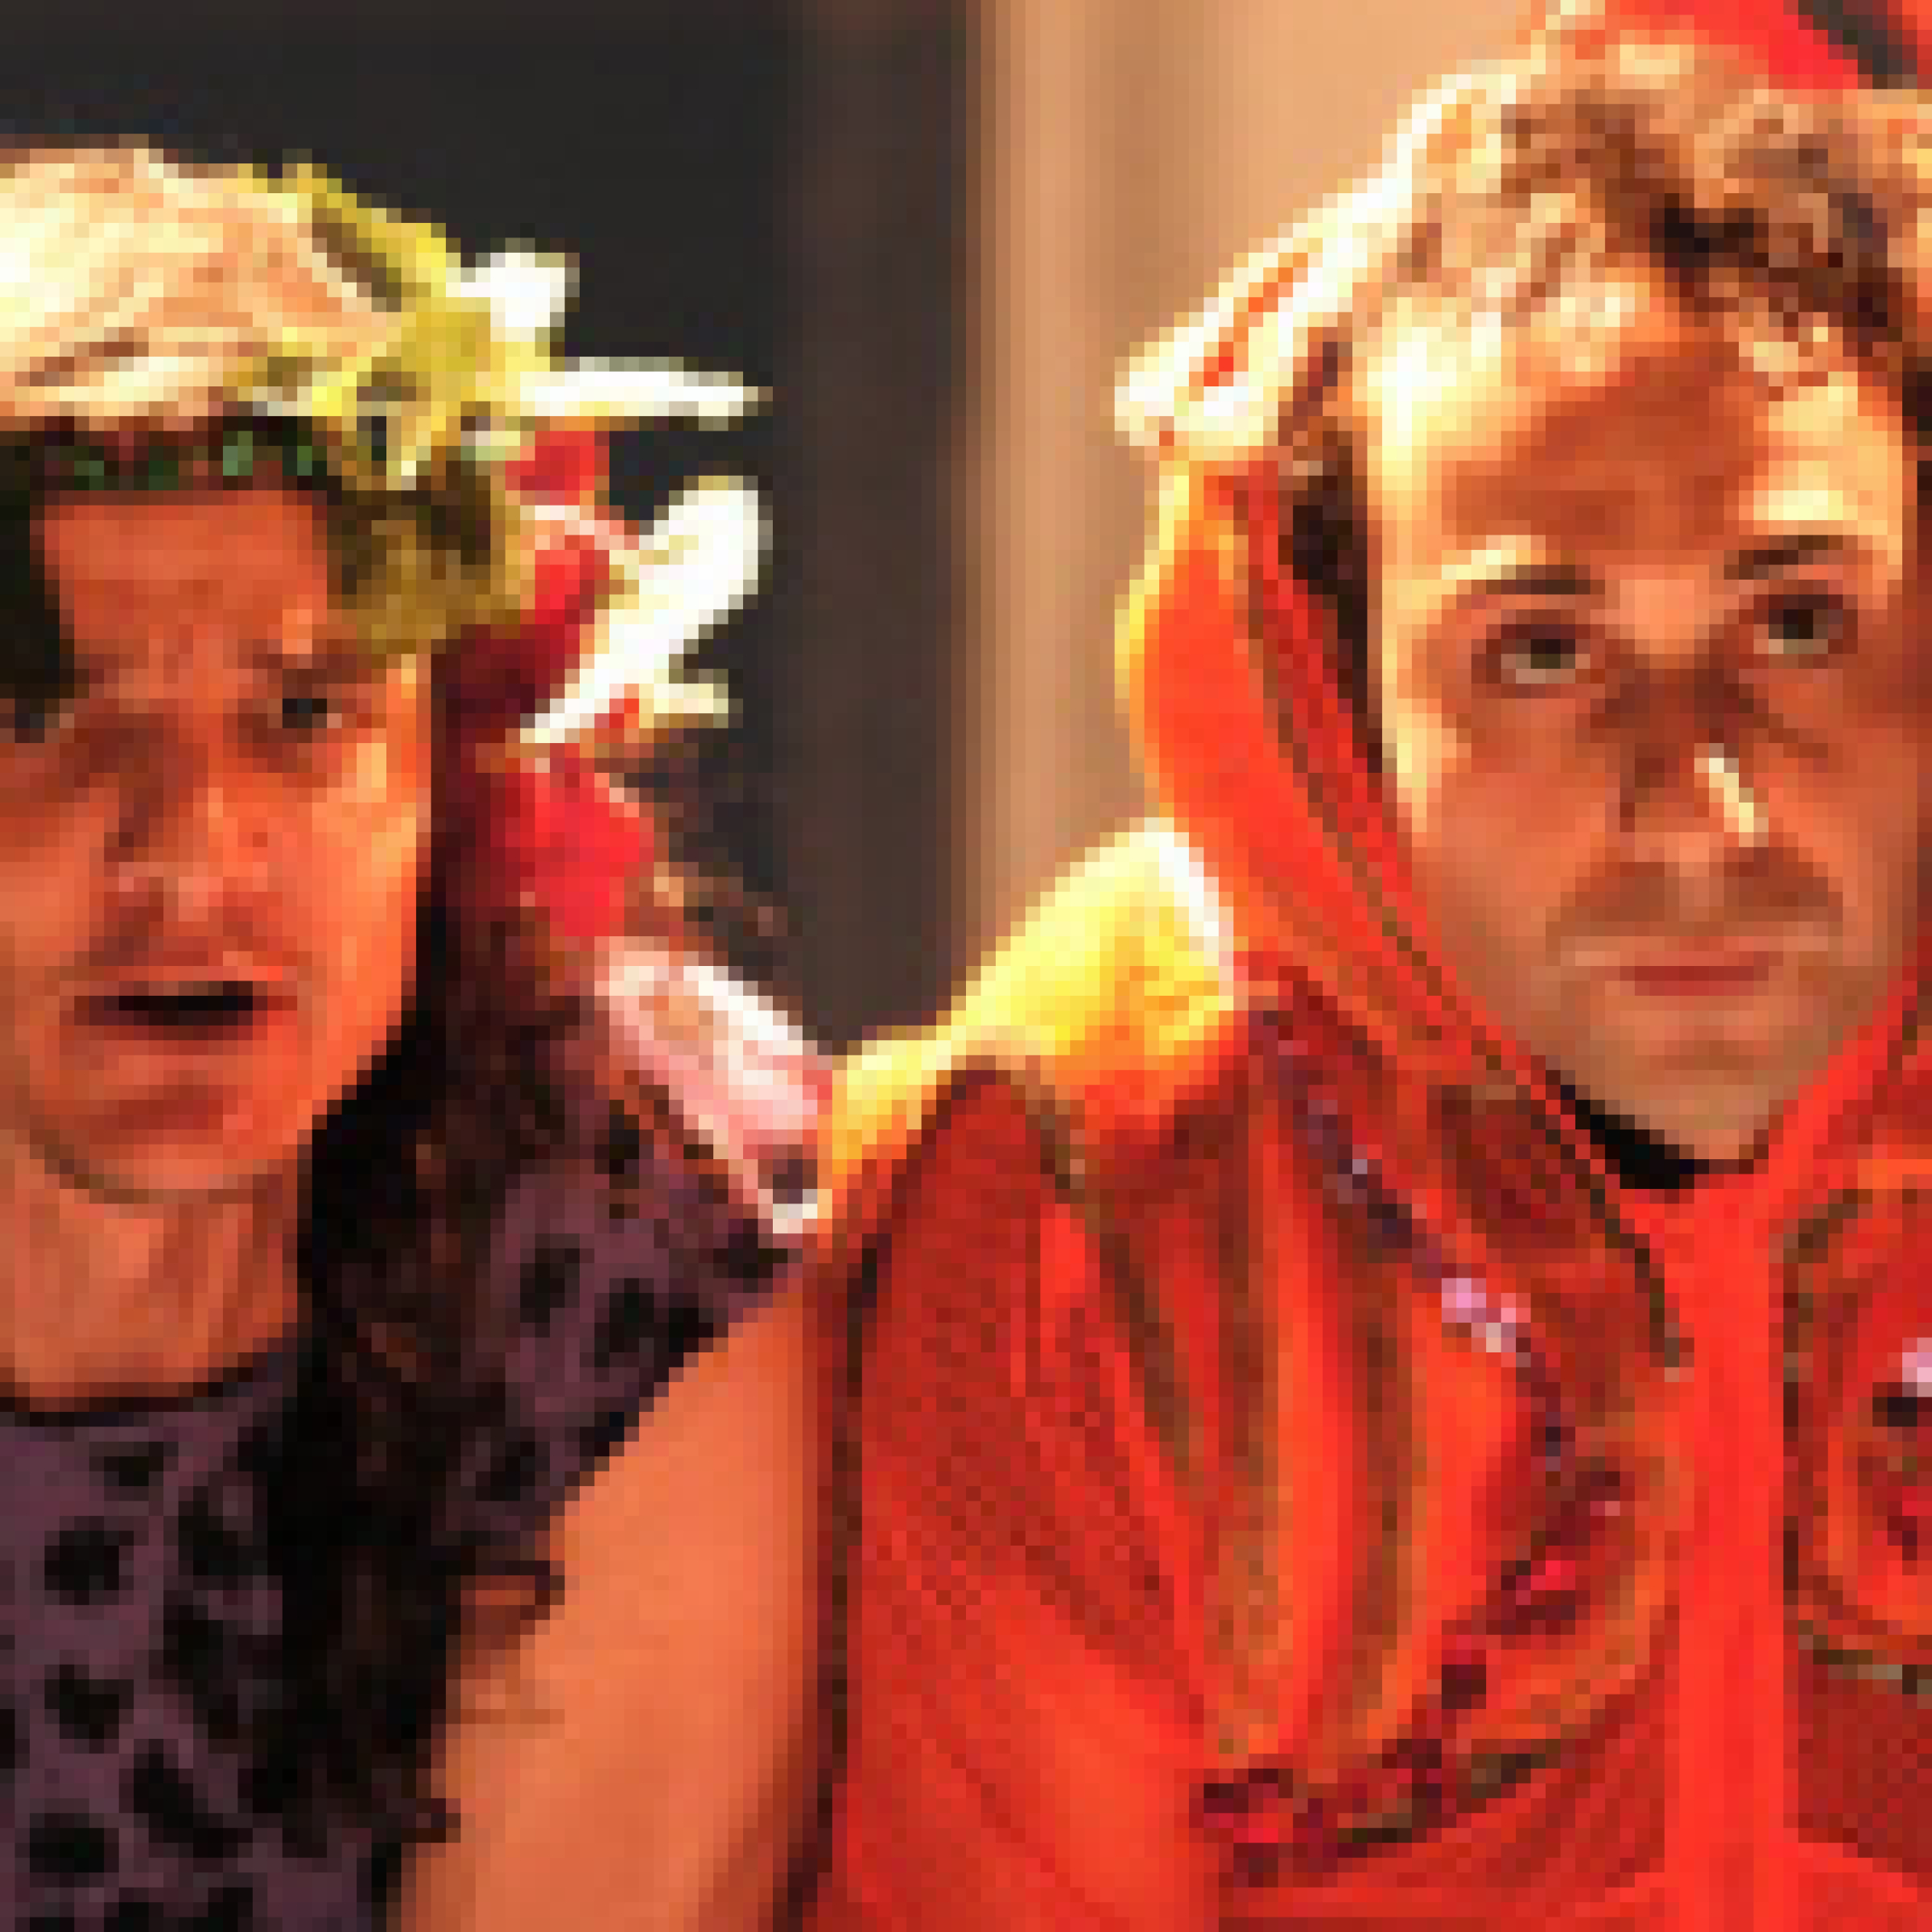 Image of: Hardy Old Comedy After Aristophanes Frogs Bolcom Old Comedy After Aristophanes Frogs Theatermania